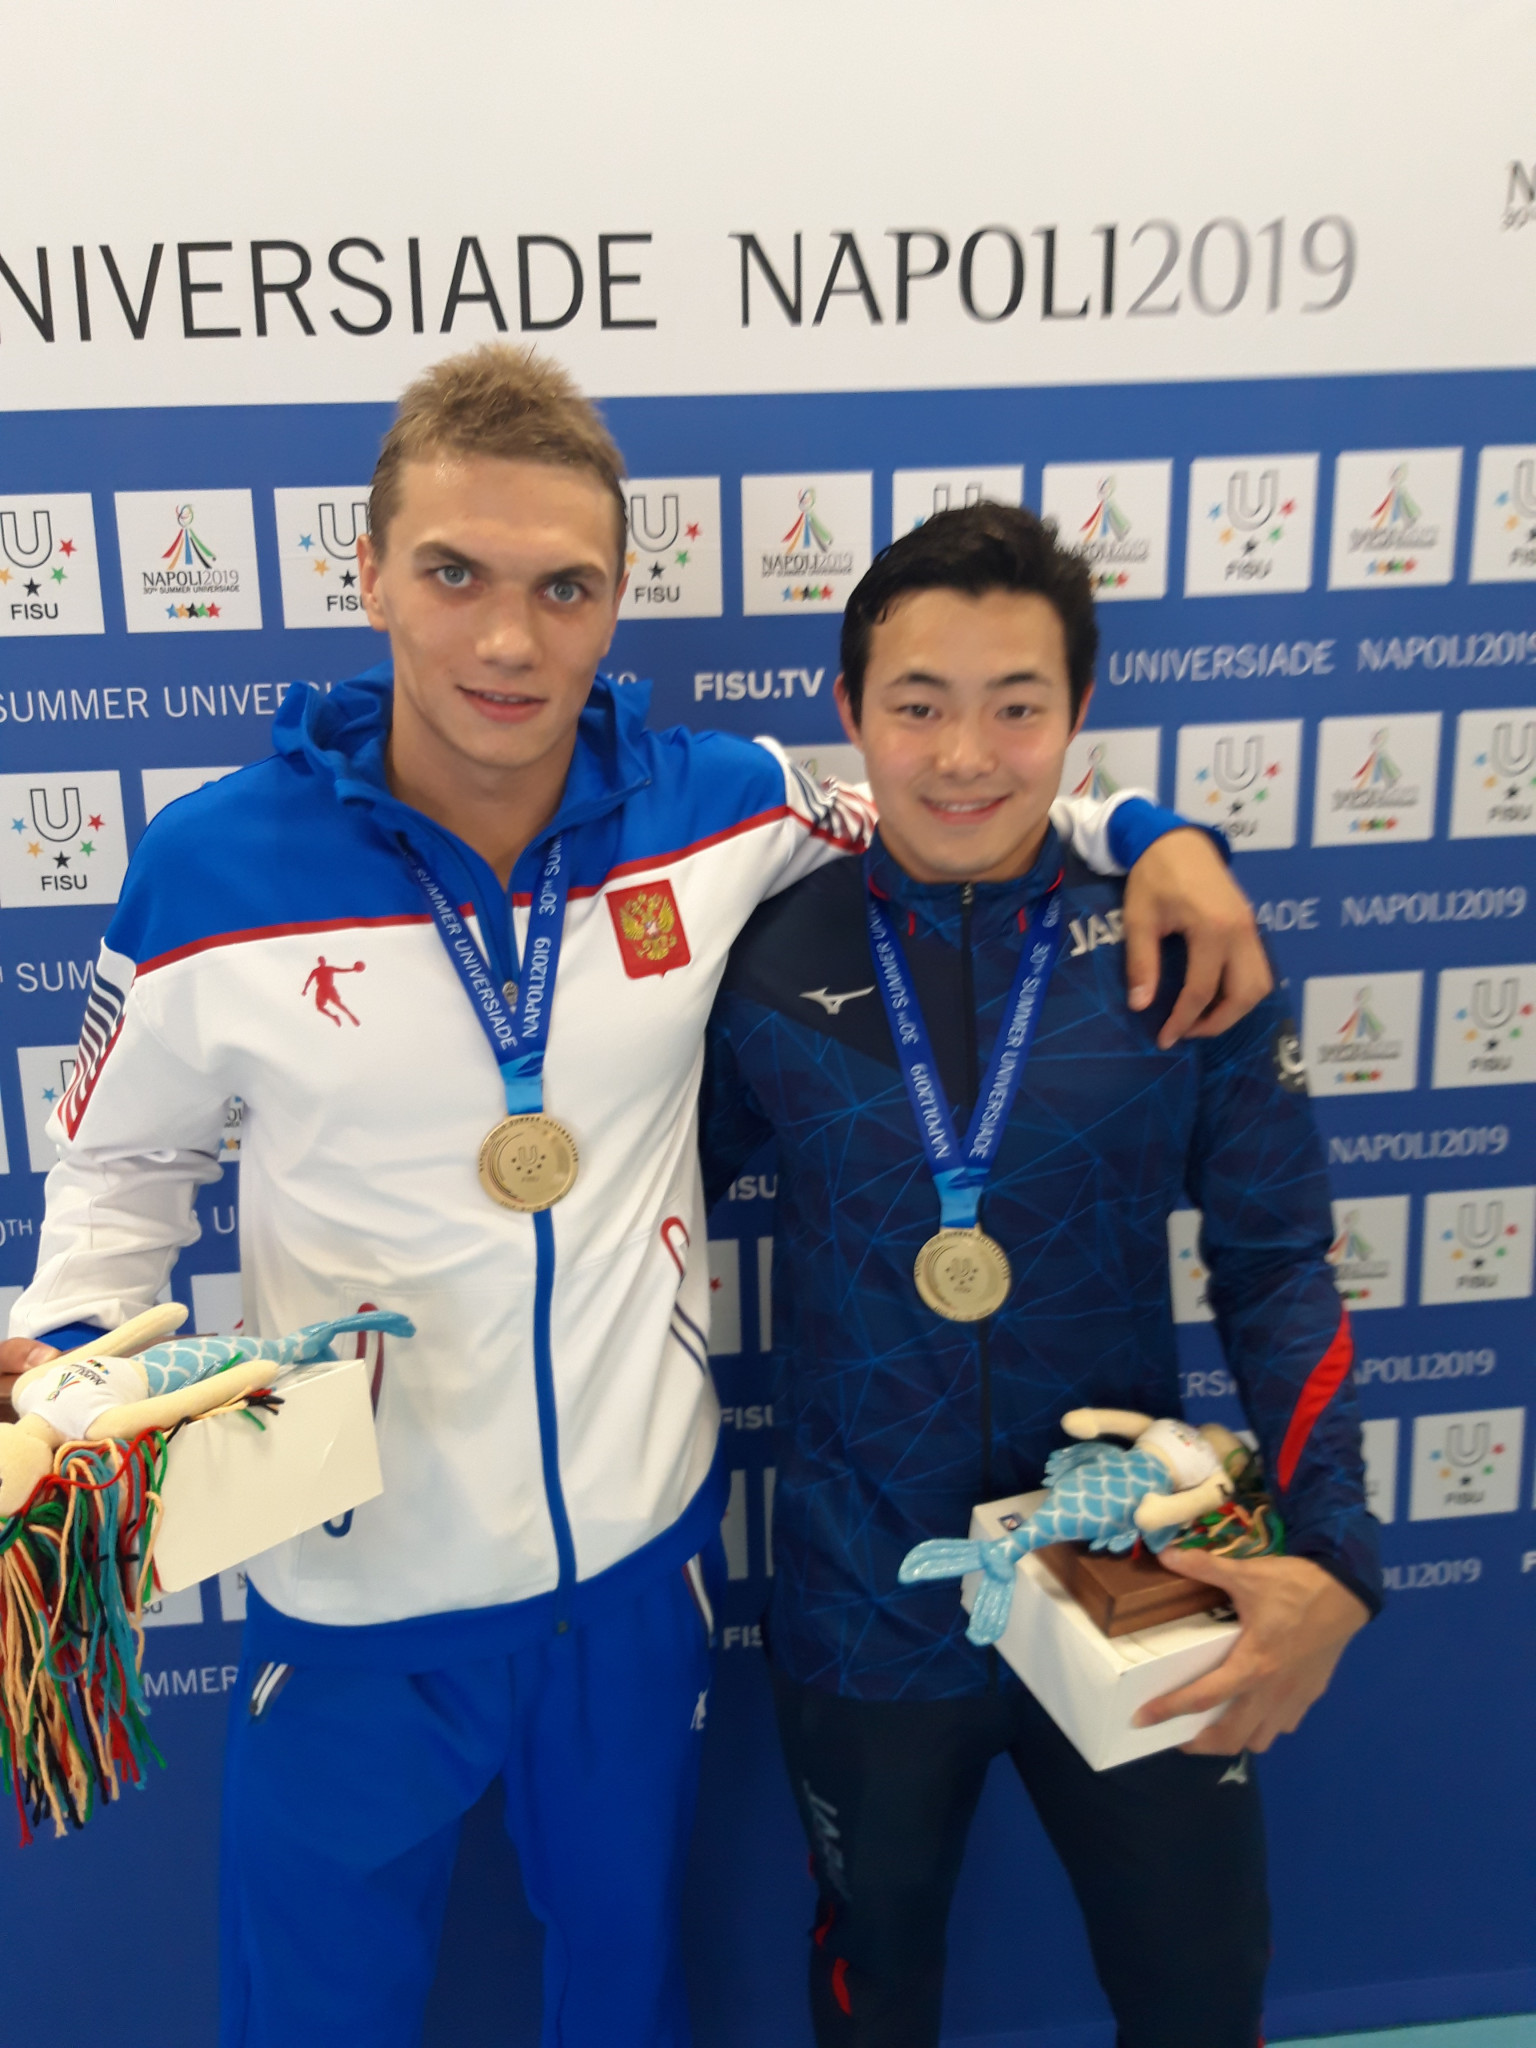 Ishikawa and Kuimov share gold after second swimming dead heat of Universiade